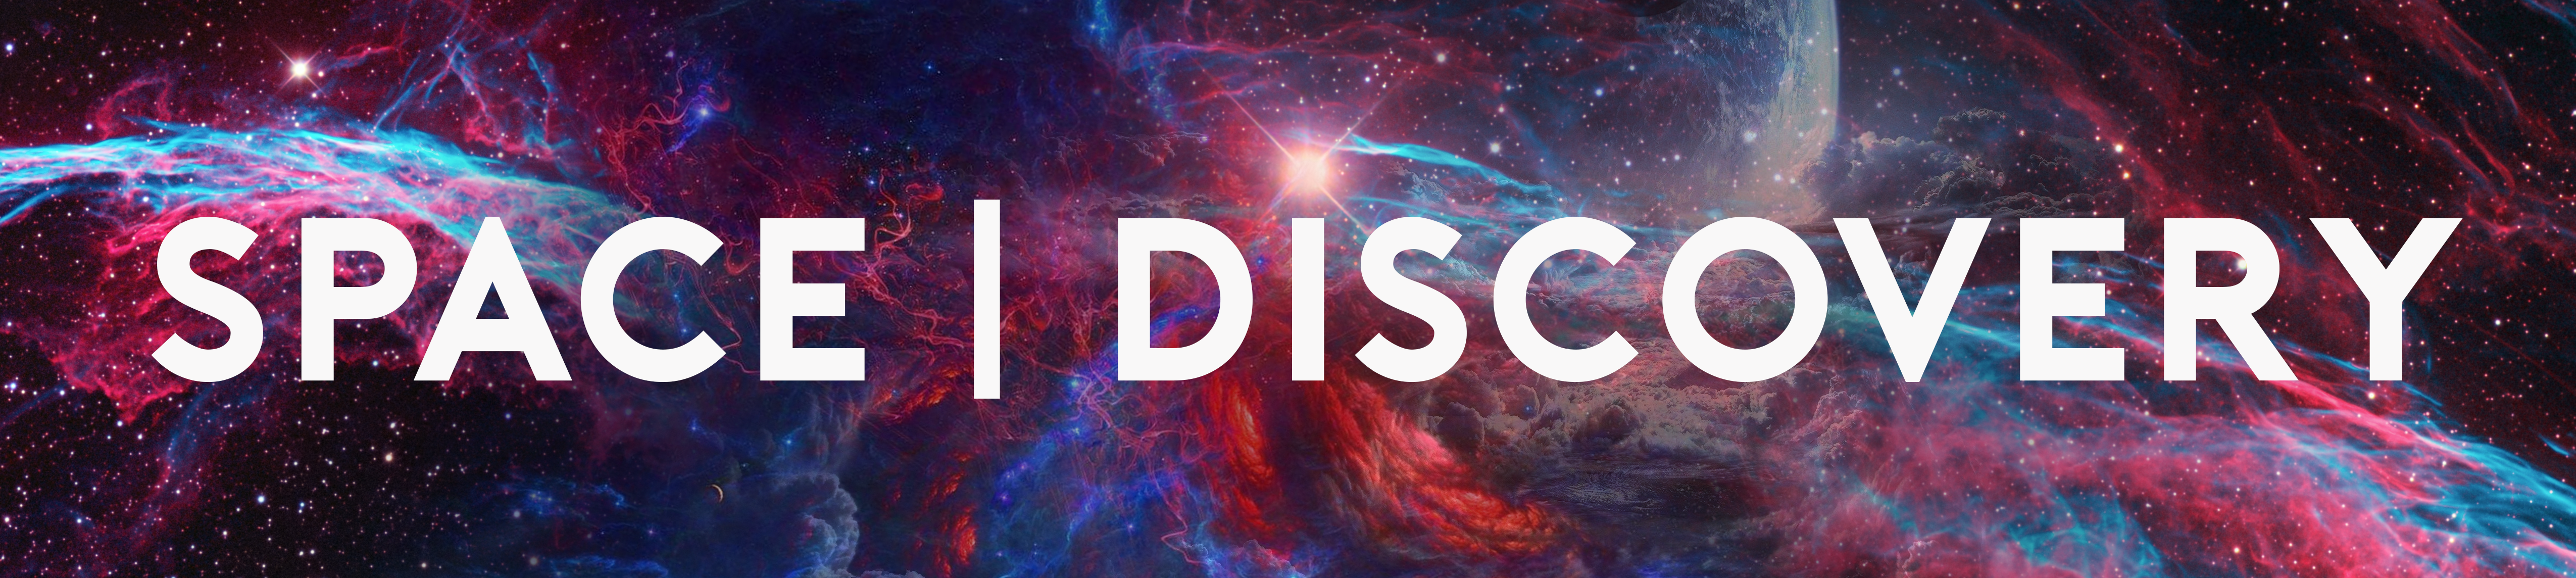 Space & Discovery